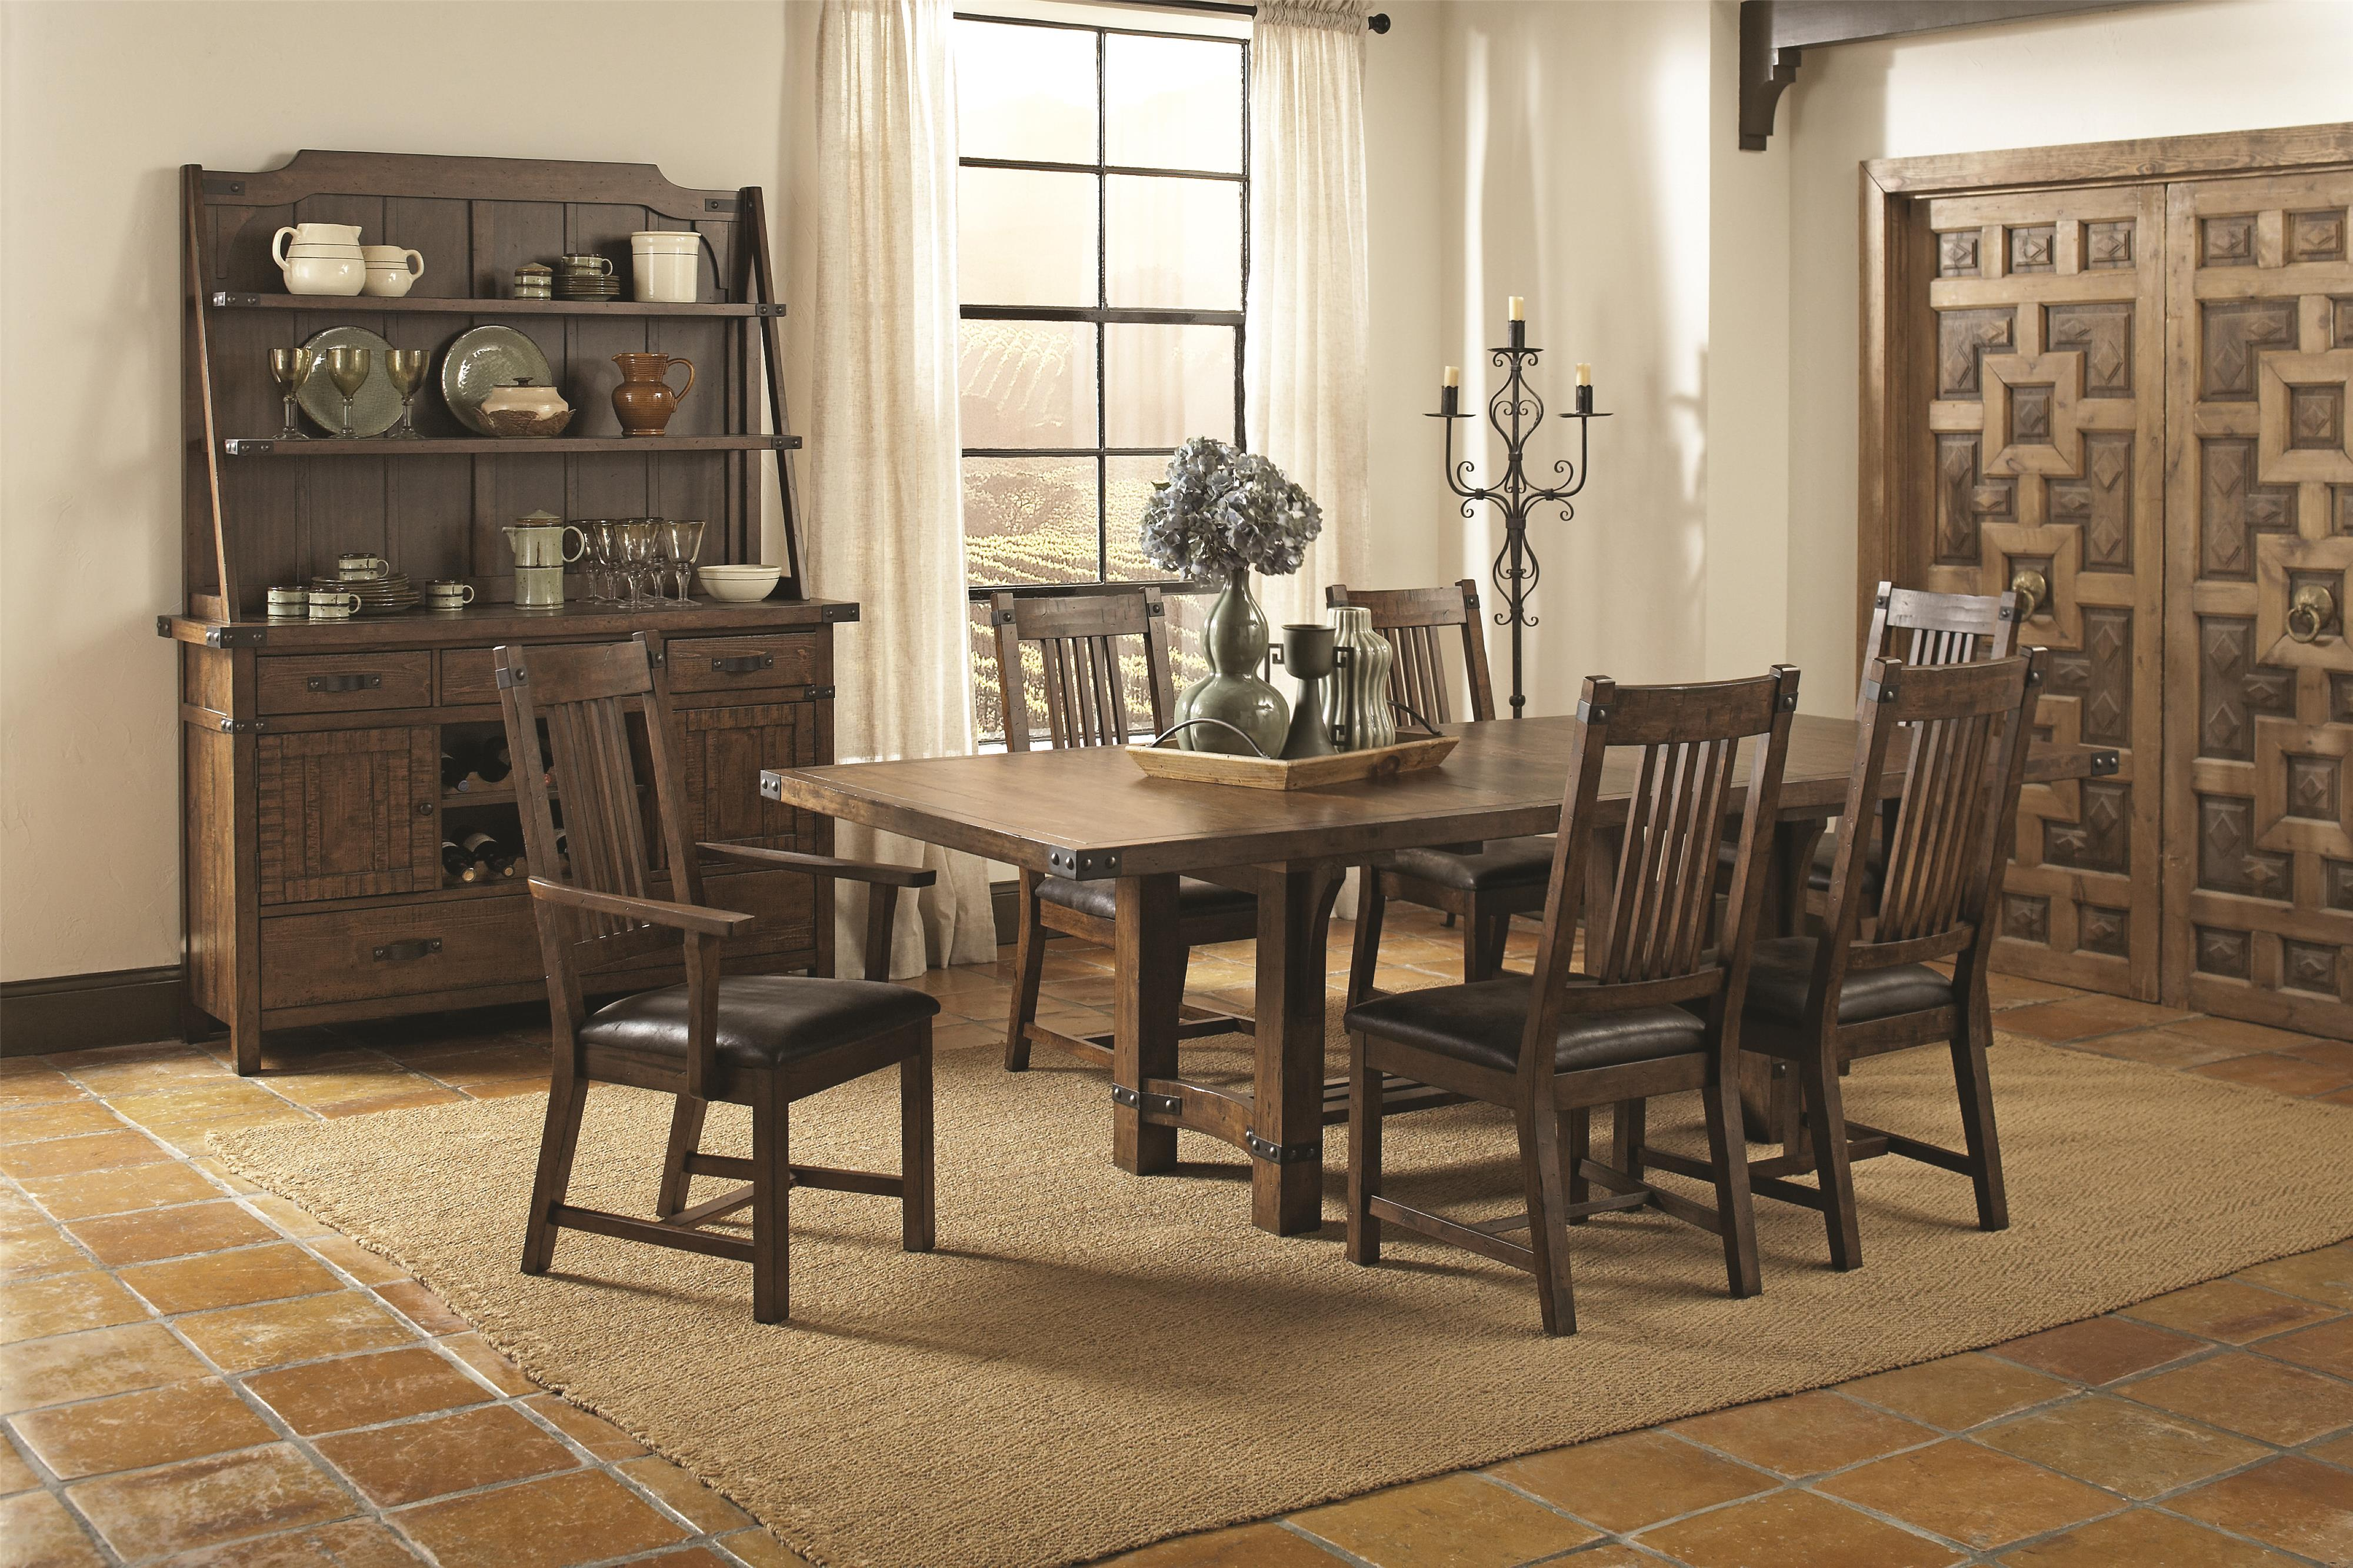 Surprising Dining Room Set With Hutch Ideas - 3D house designs ...